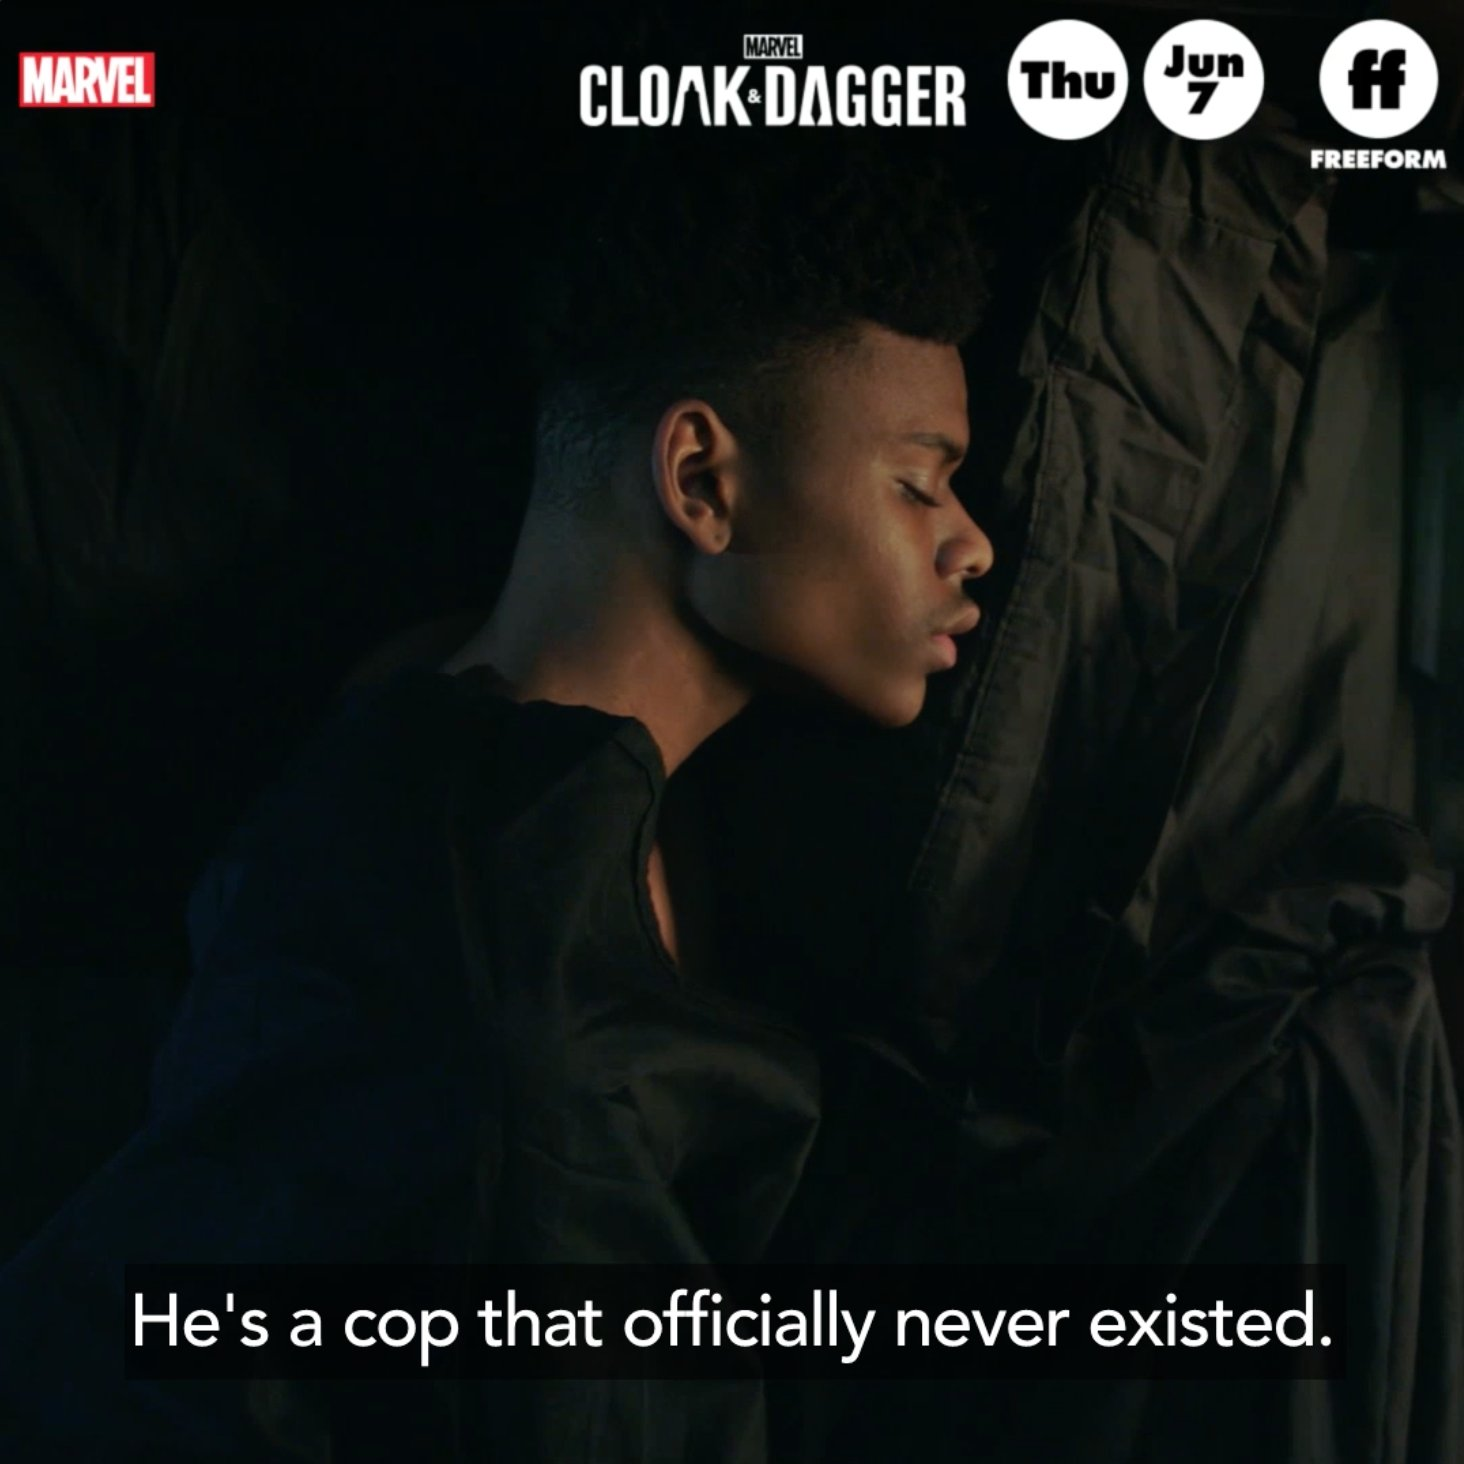 Taking back what is theirs.  Marvel's #CloakAndDagger premieres Thursday, June 7 on @FreeformTV. https://t.co/2kwSeMej78